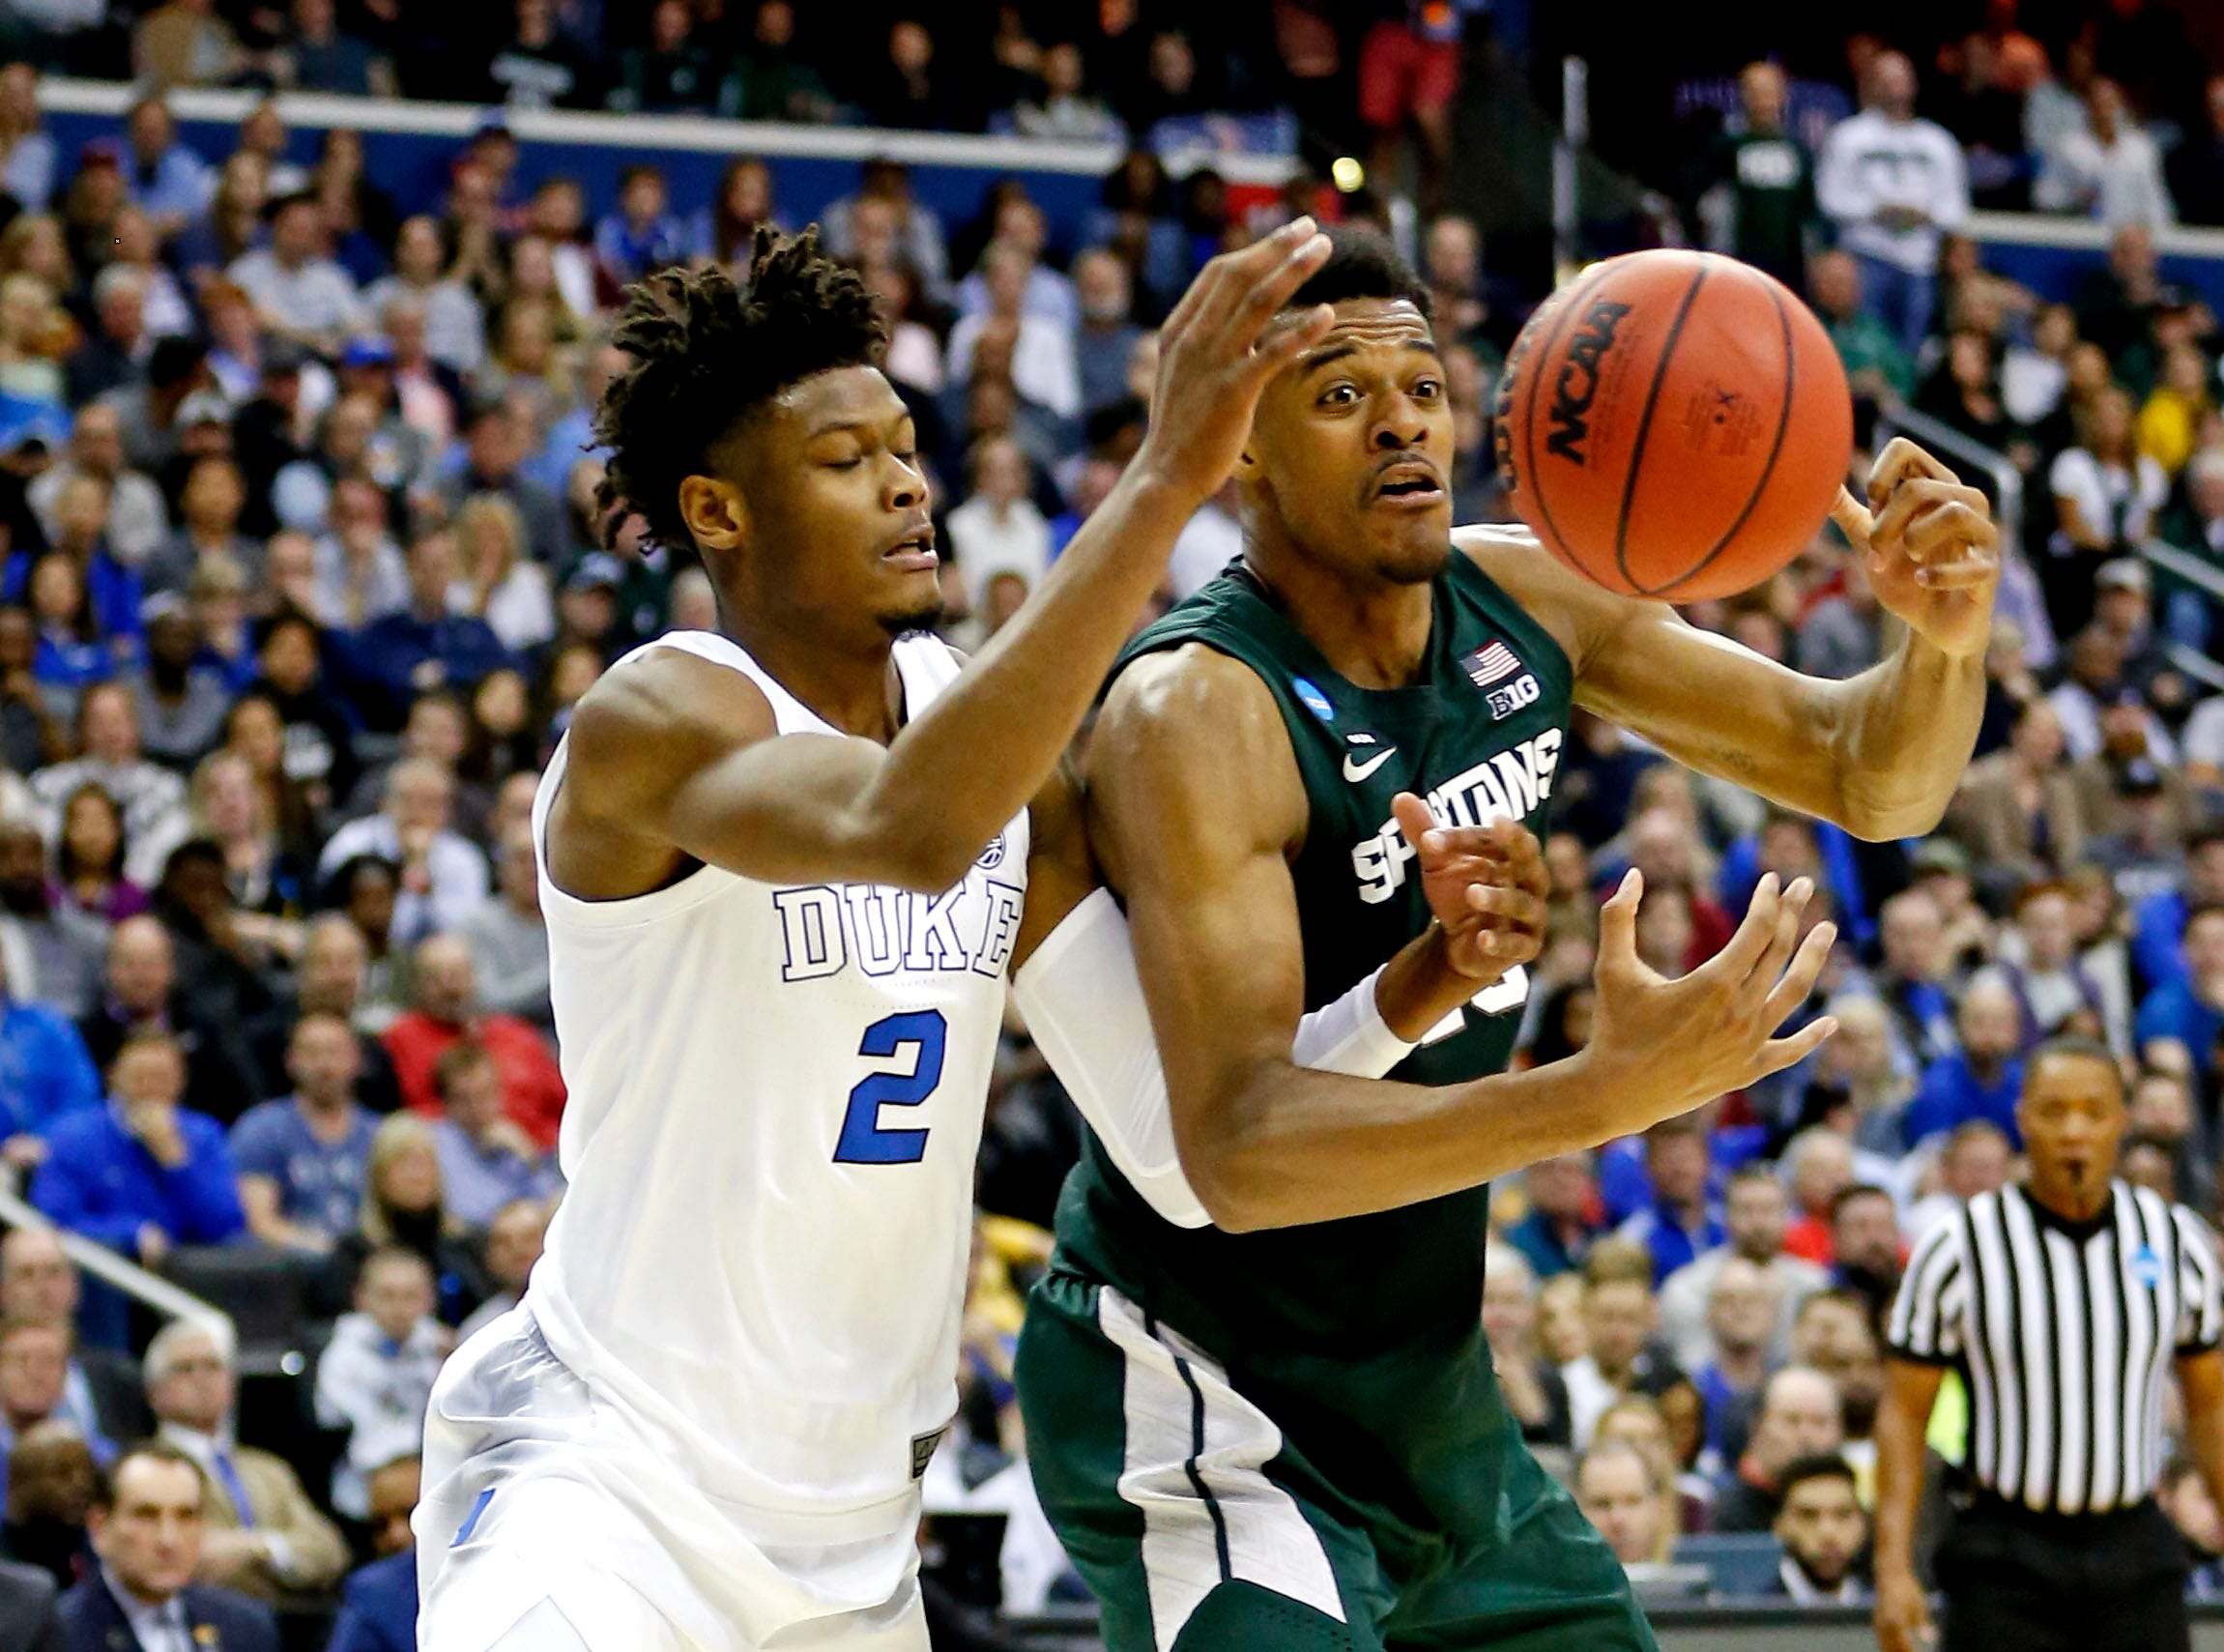 Mar 31, 2019; Washington, DC, USA; Michigan State Spartans forward Xavier Tillman (23) and Duke Blue Devils forward Cam Reddish (2) go for a loose ball during the first half in the championship game of the east regional of the 2019 NCAA Tournament at Capital One Arena. Mandatory Credit: Amber Searls-USA TODAY Sports